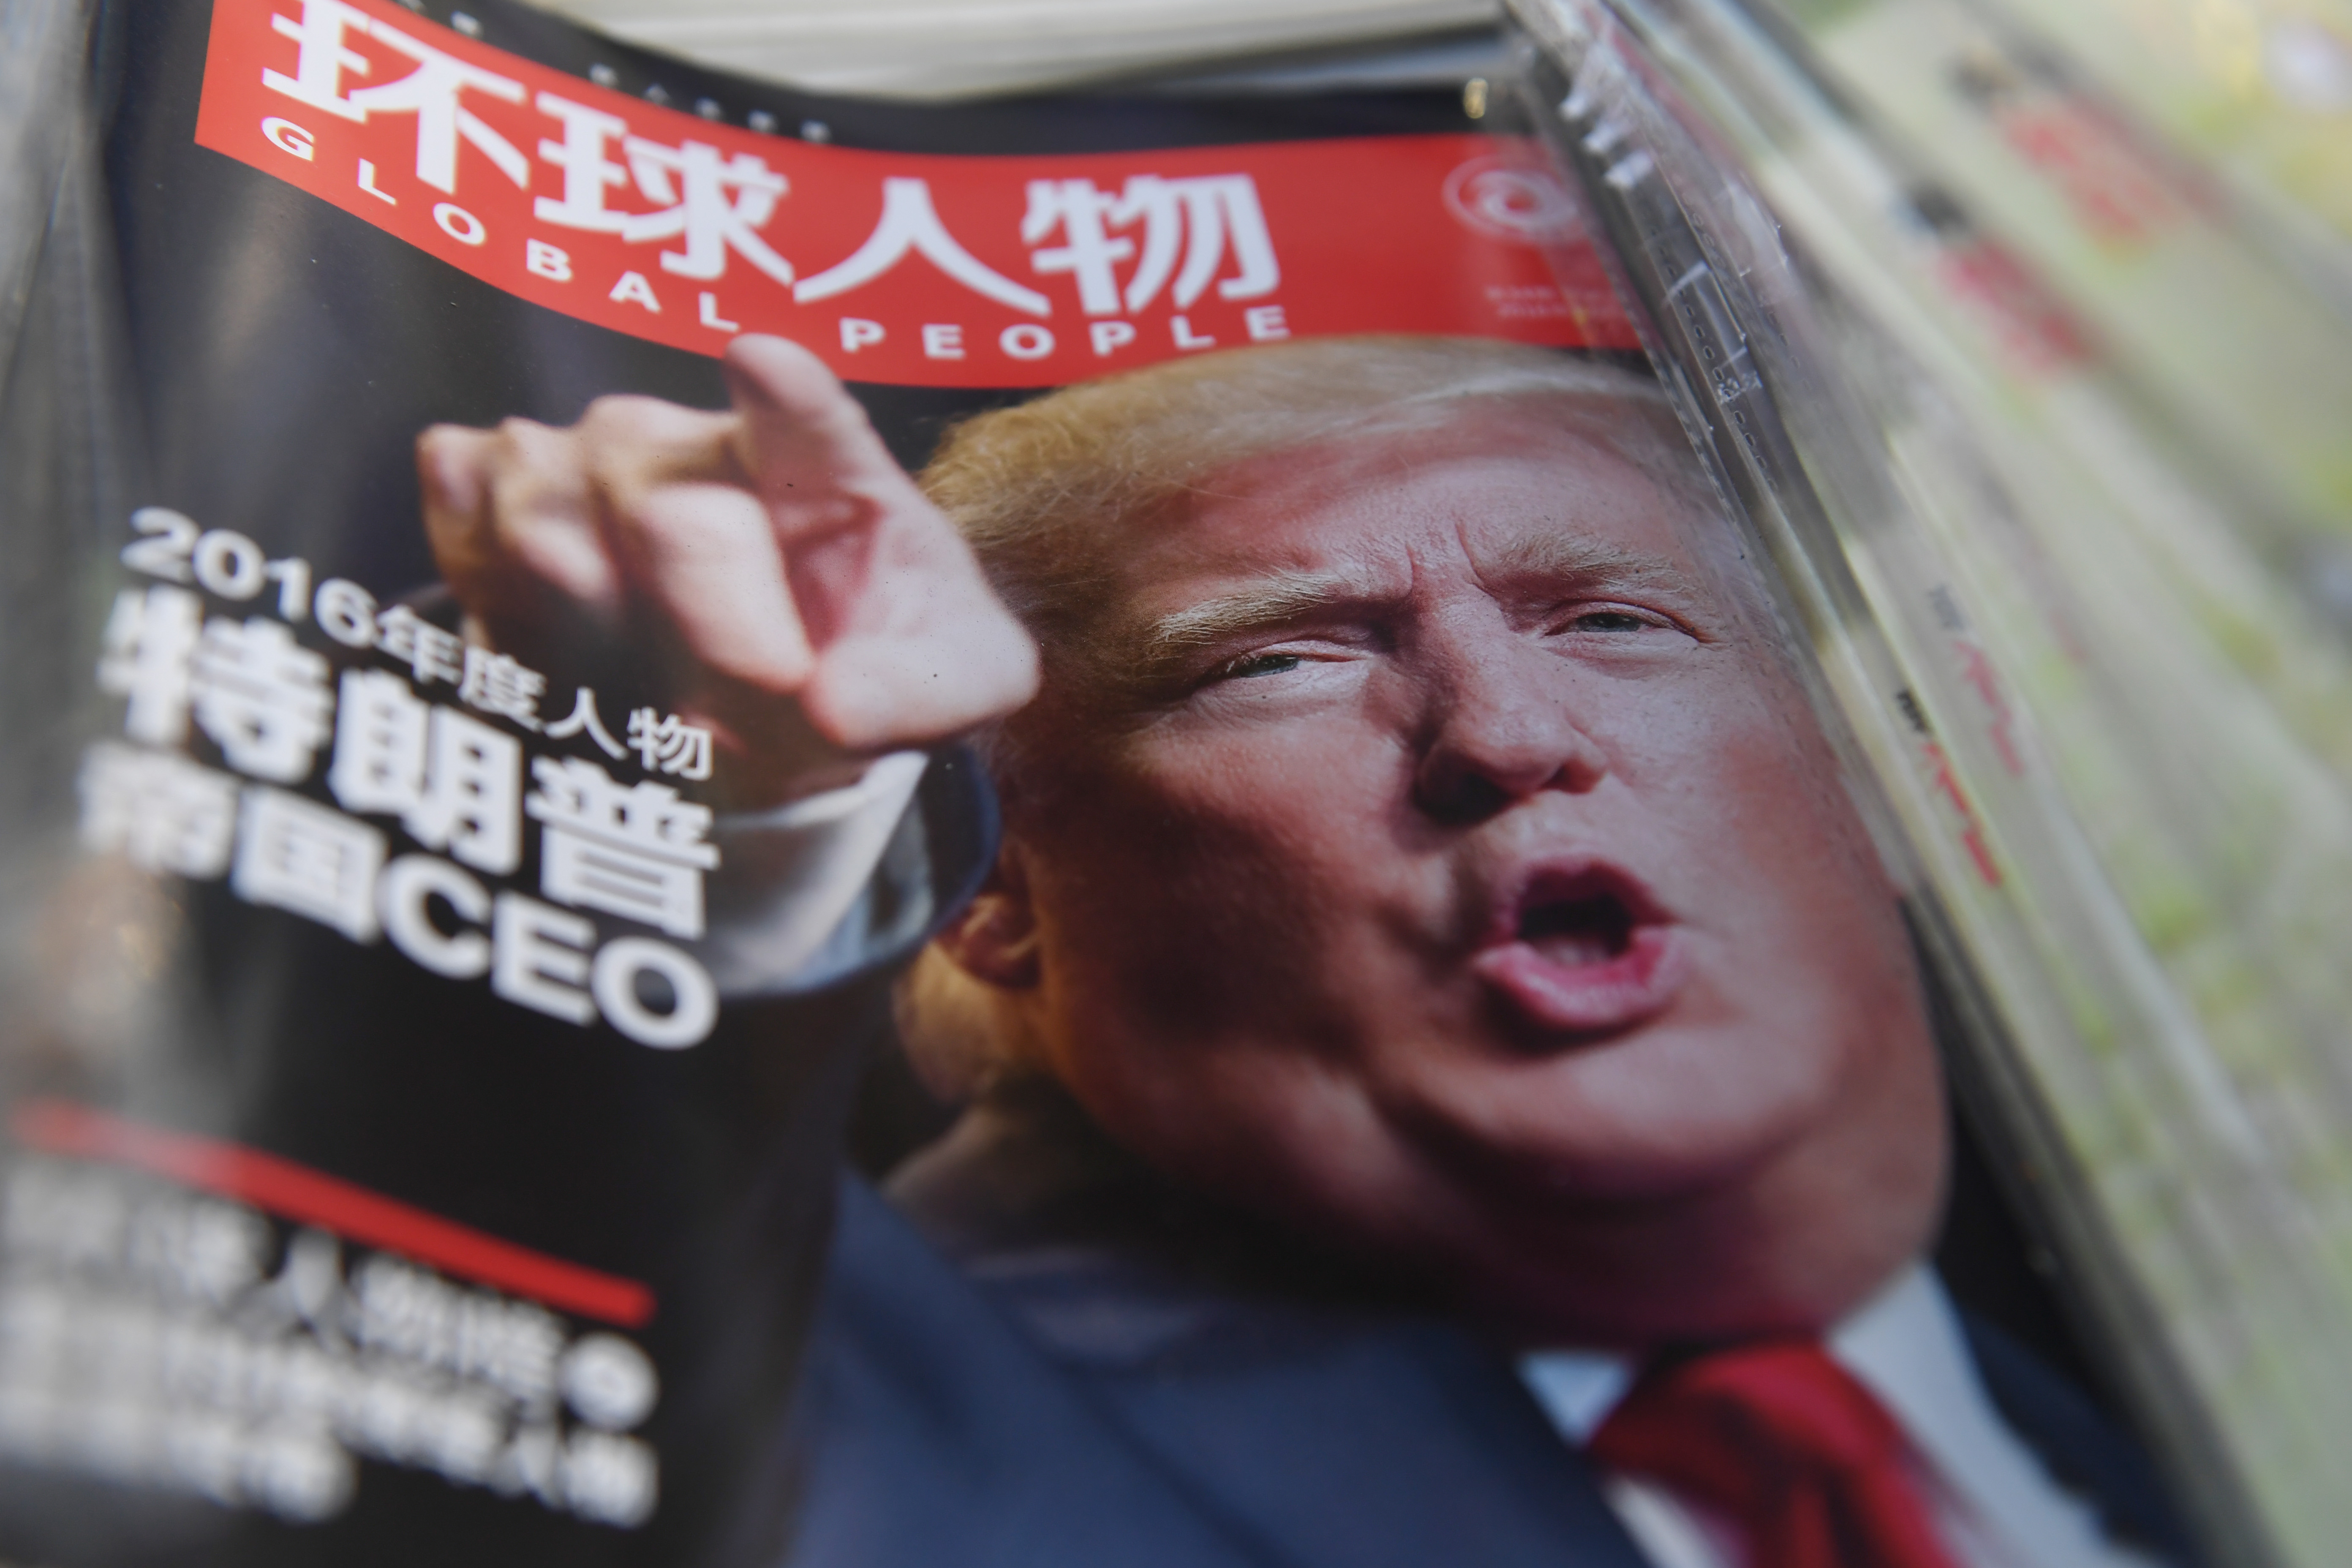 A Chinese magazine with a cover story naming then-President-elect Donald Trump their Person of the Year for 2016.